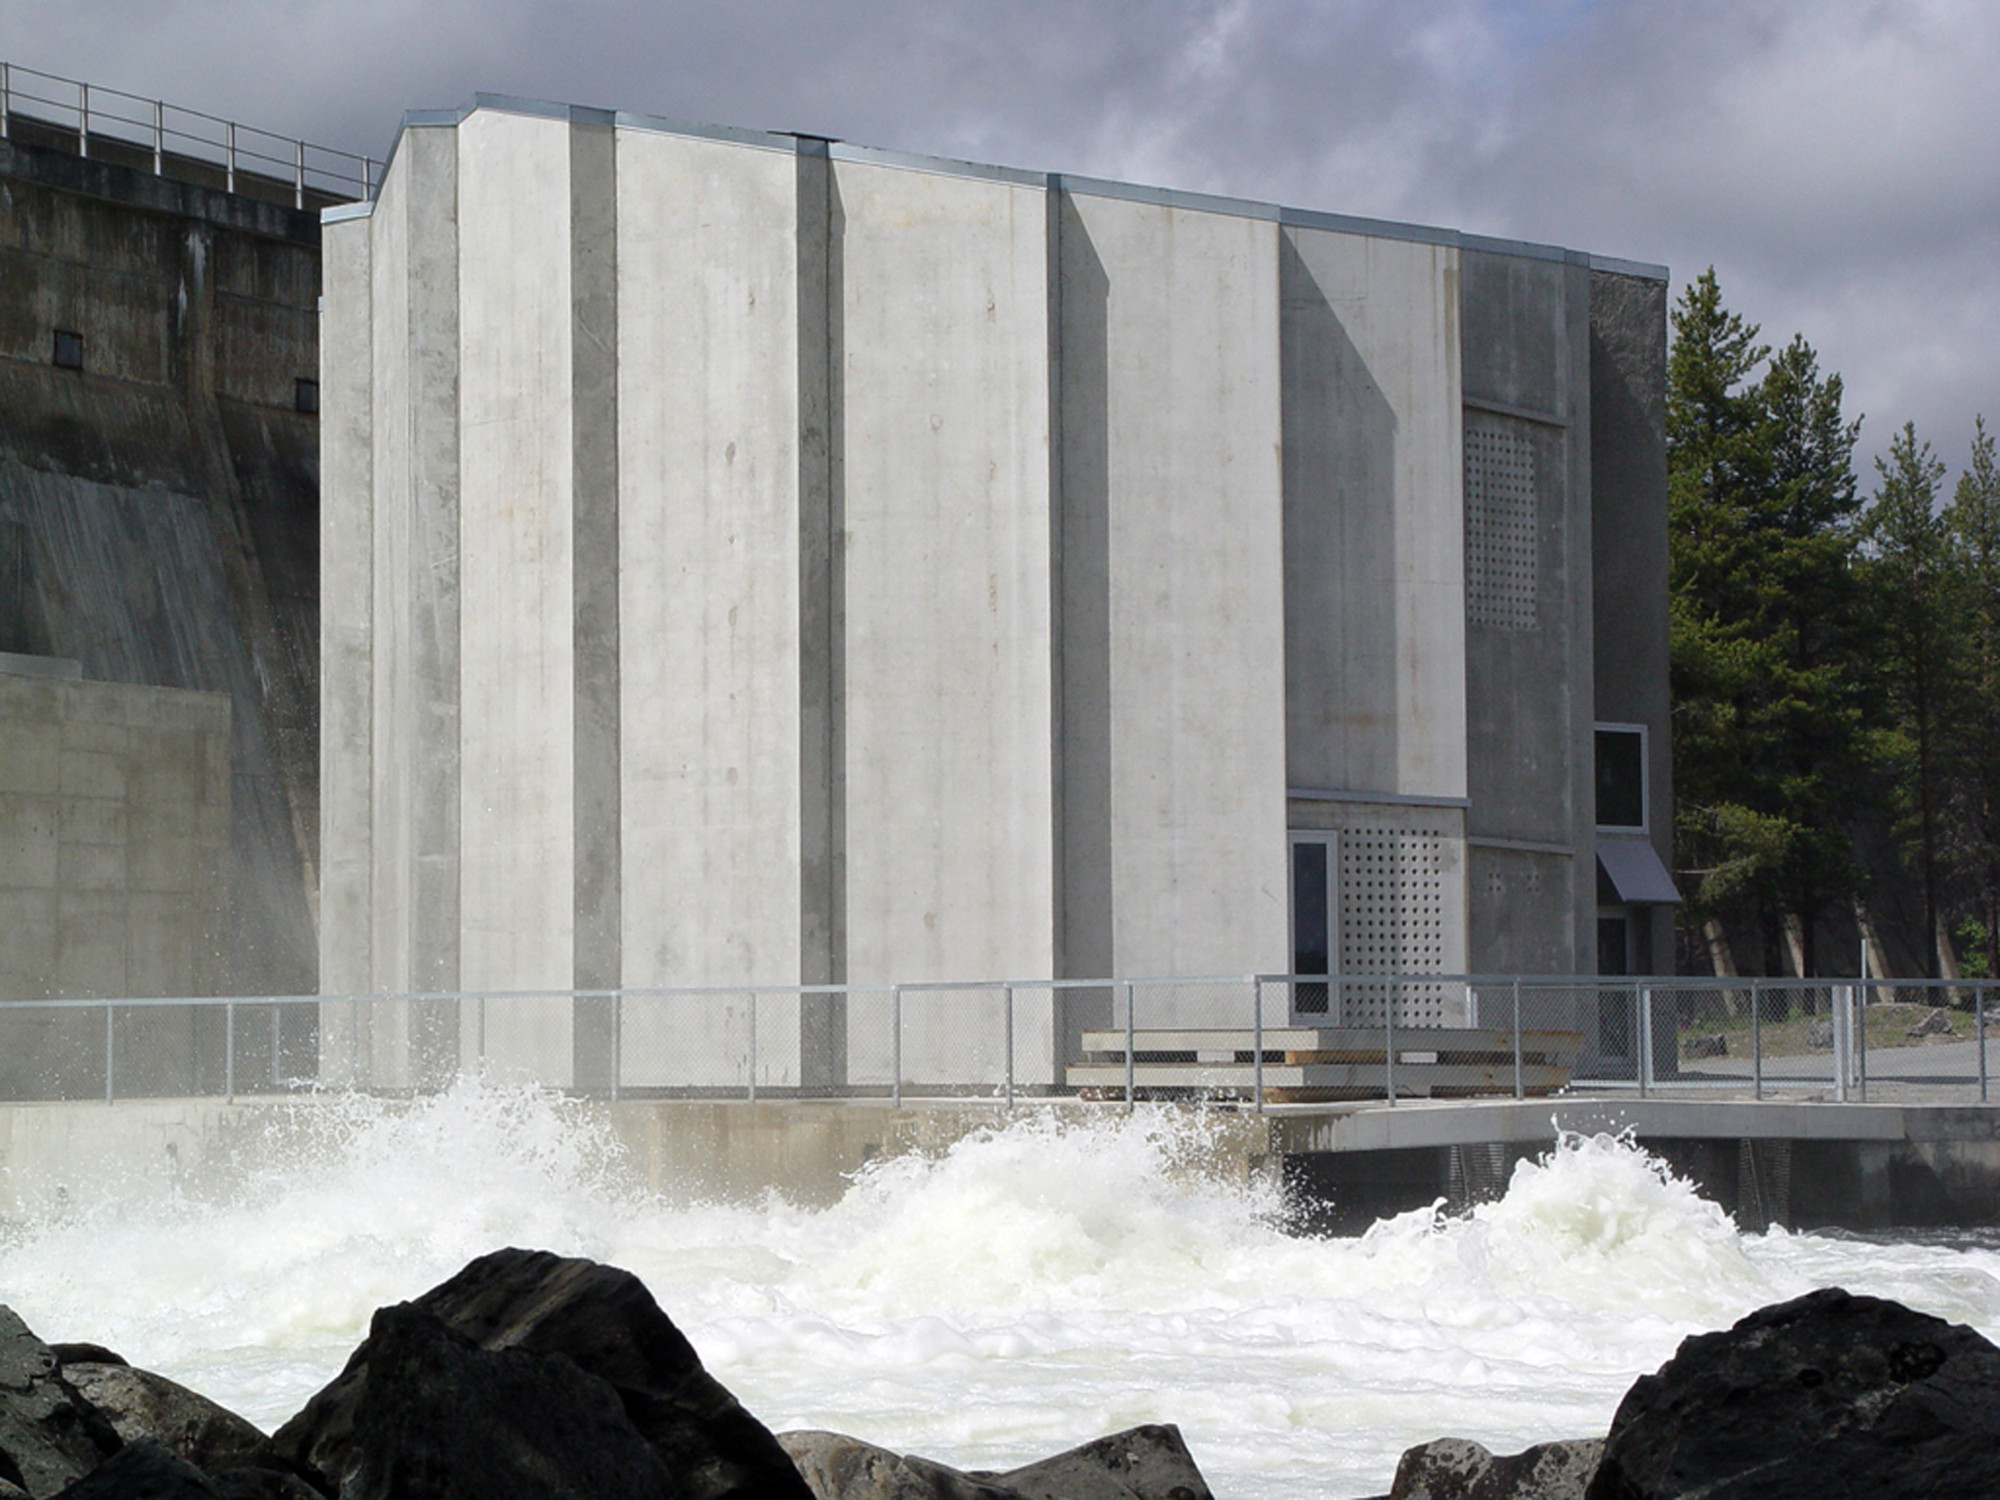 Pålsbu Hydro Power Station / Manthey Kula Architects, Courtesy of Manthey Kula Architects